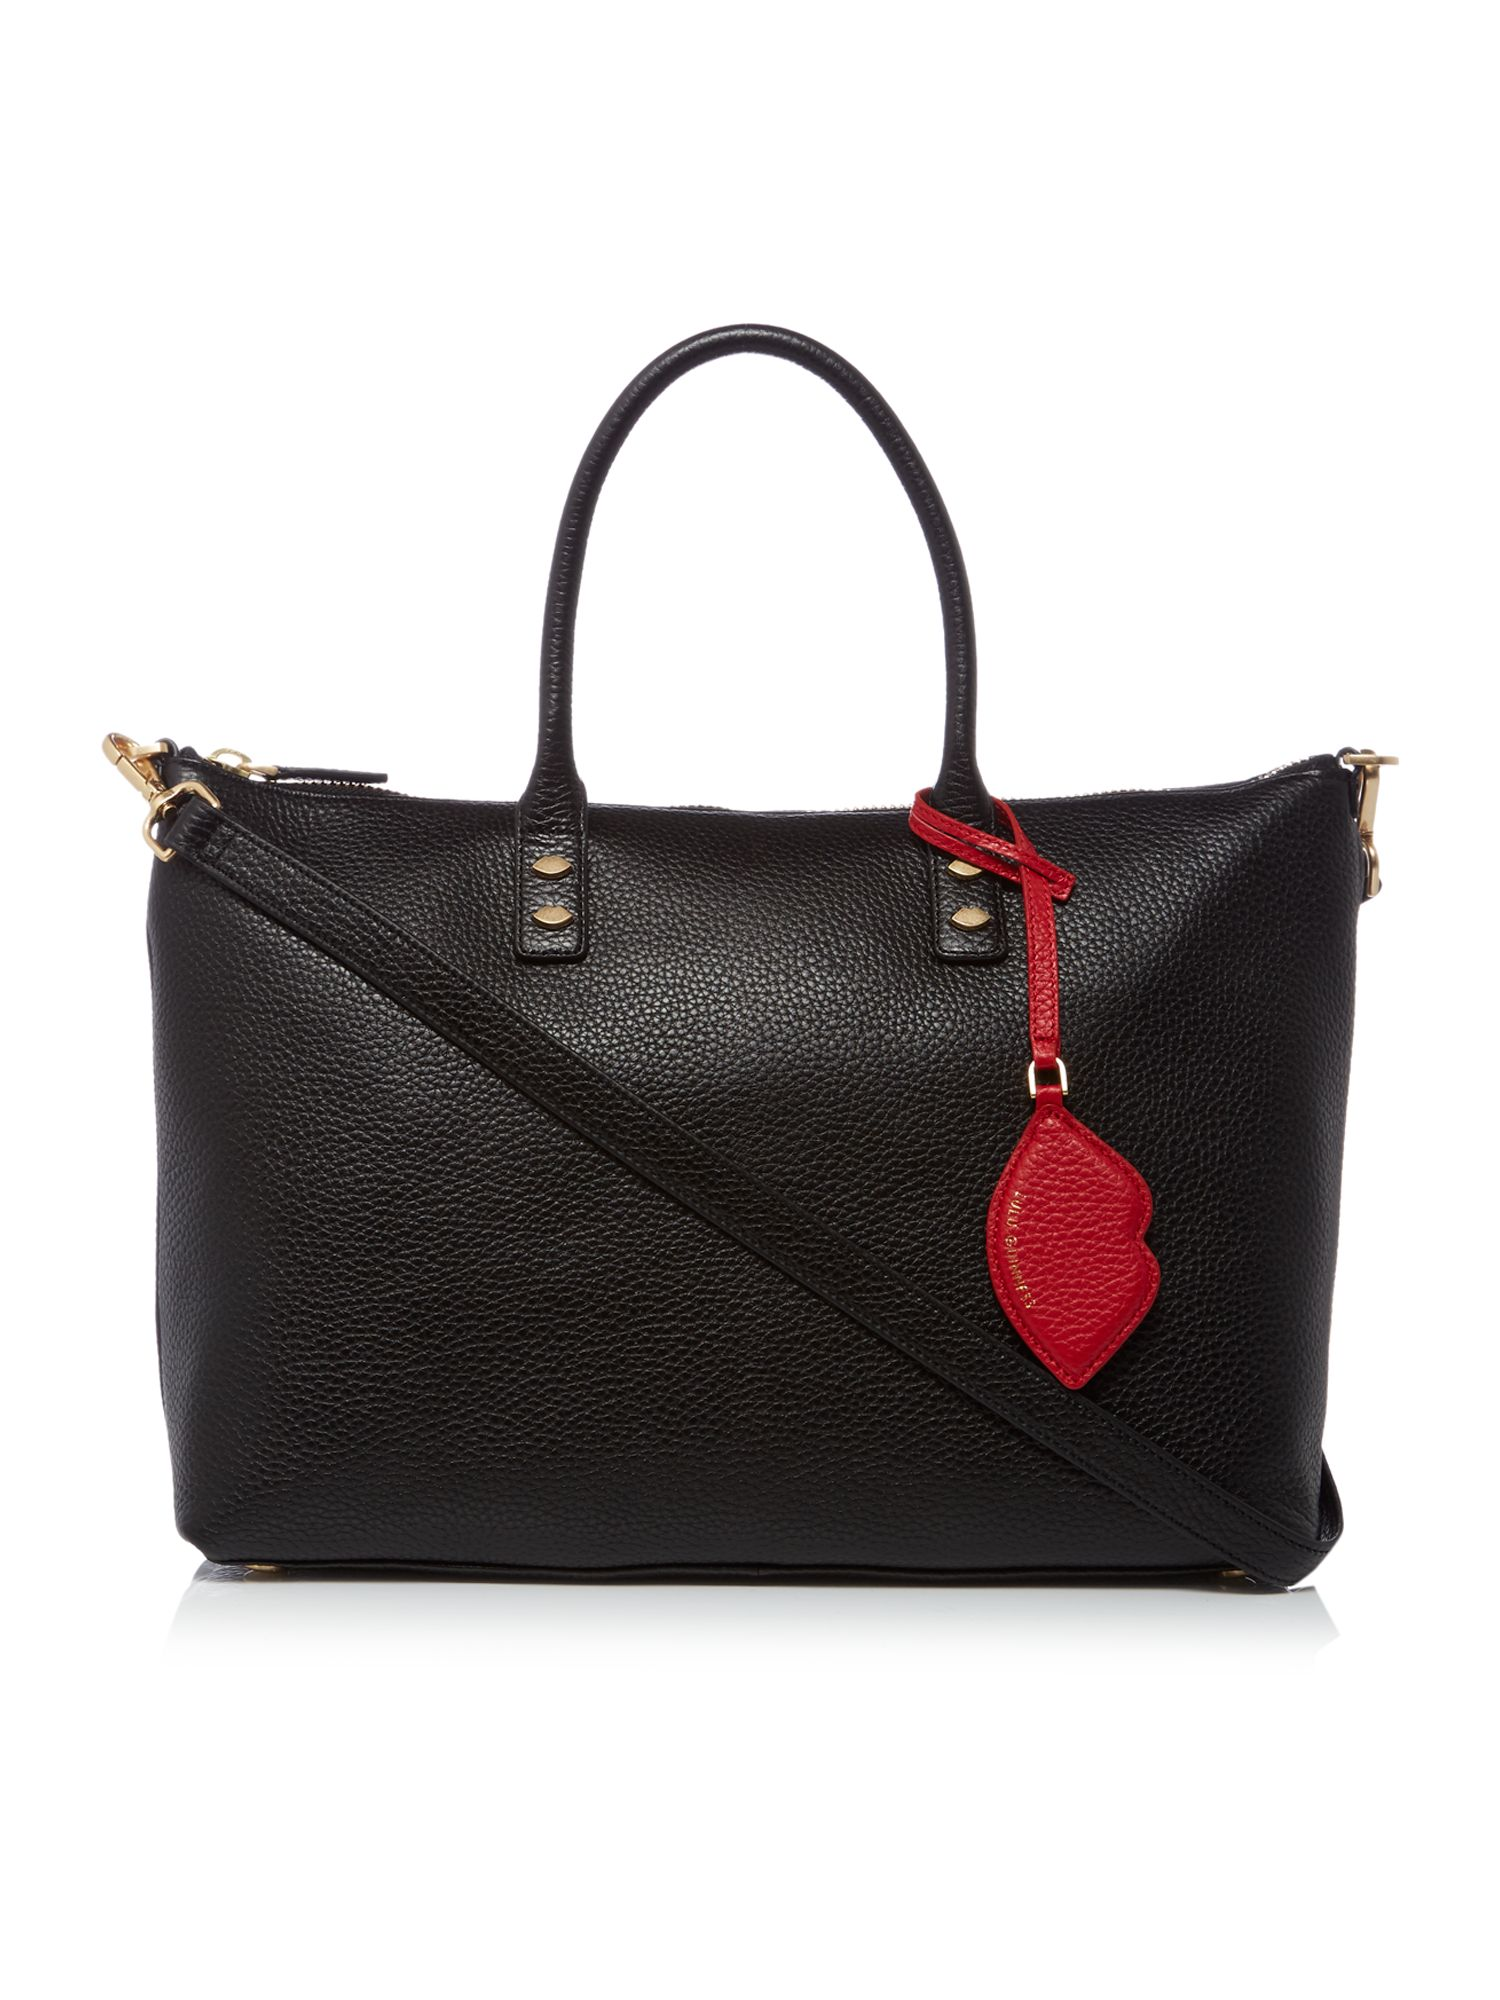 Lulu Guinness Frances Pebble Tote Bag with Lip Charm, Black